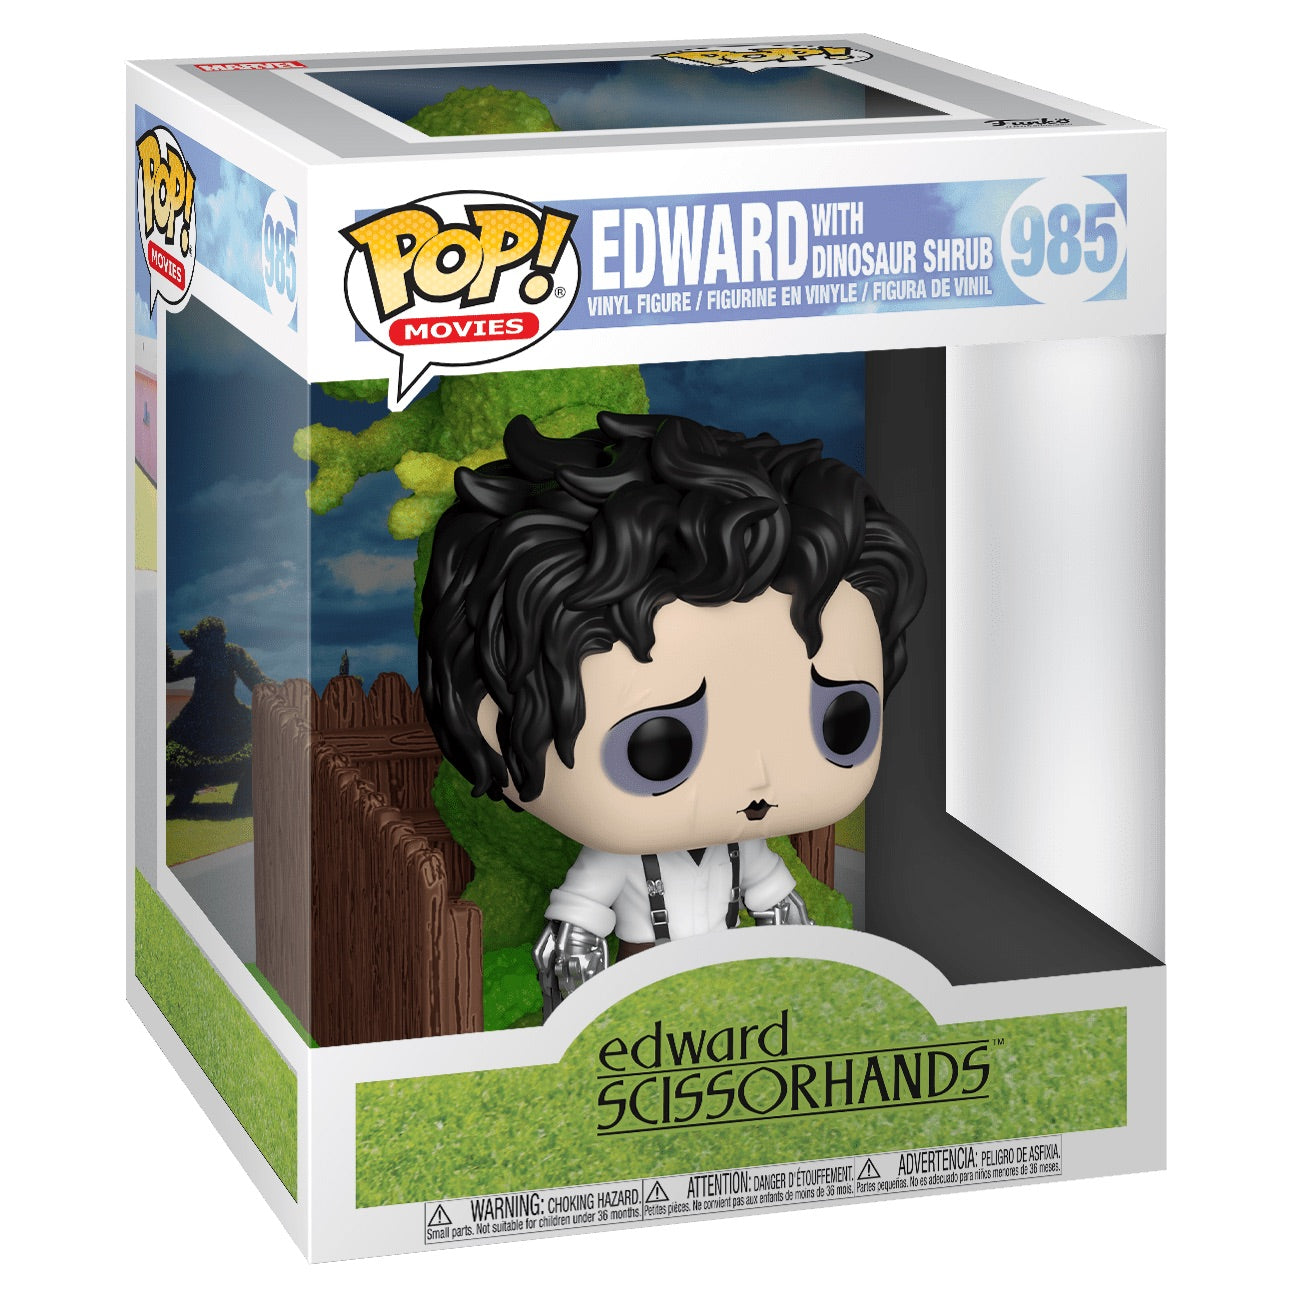 Edward Scissorhands Edward and Dino Hedge Deluxe (October Preorder)